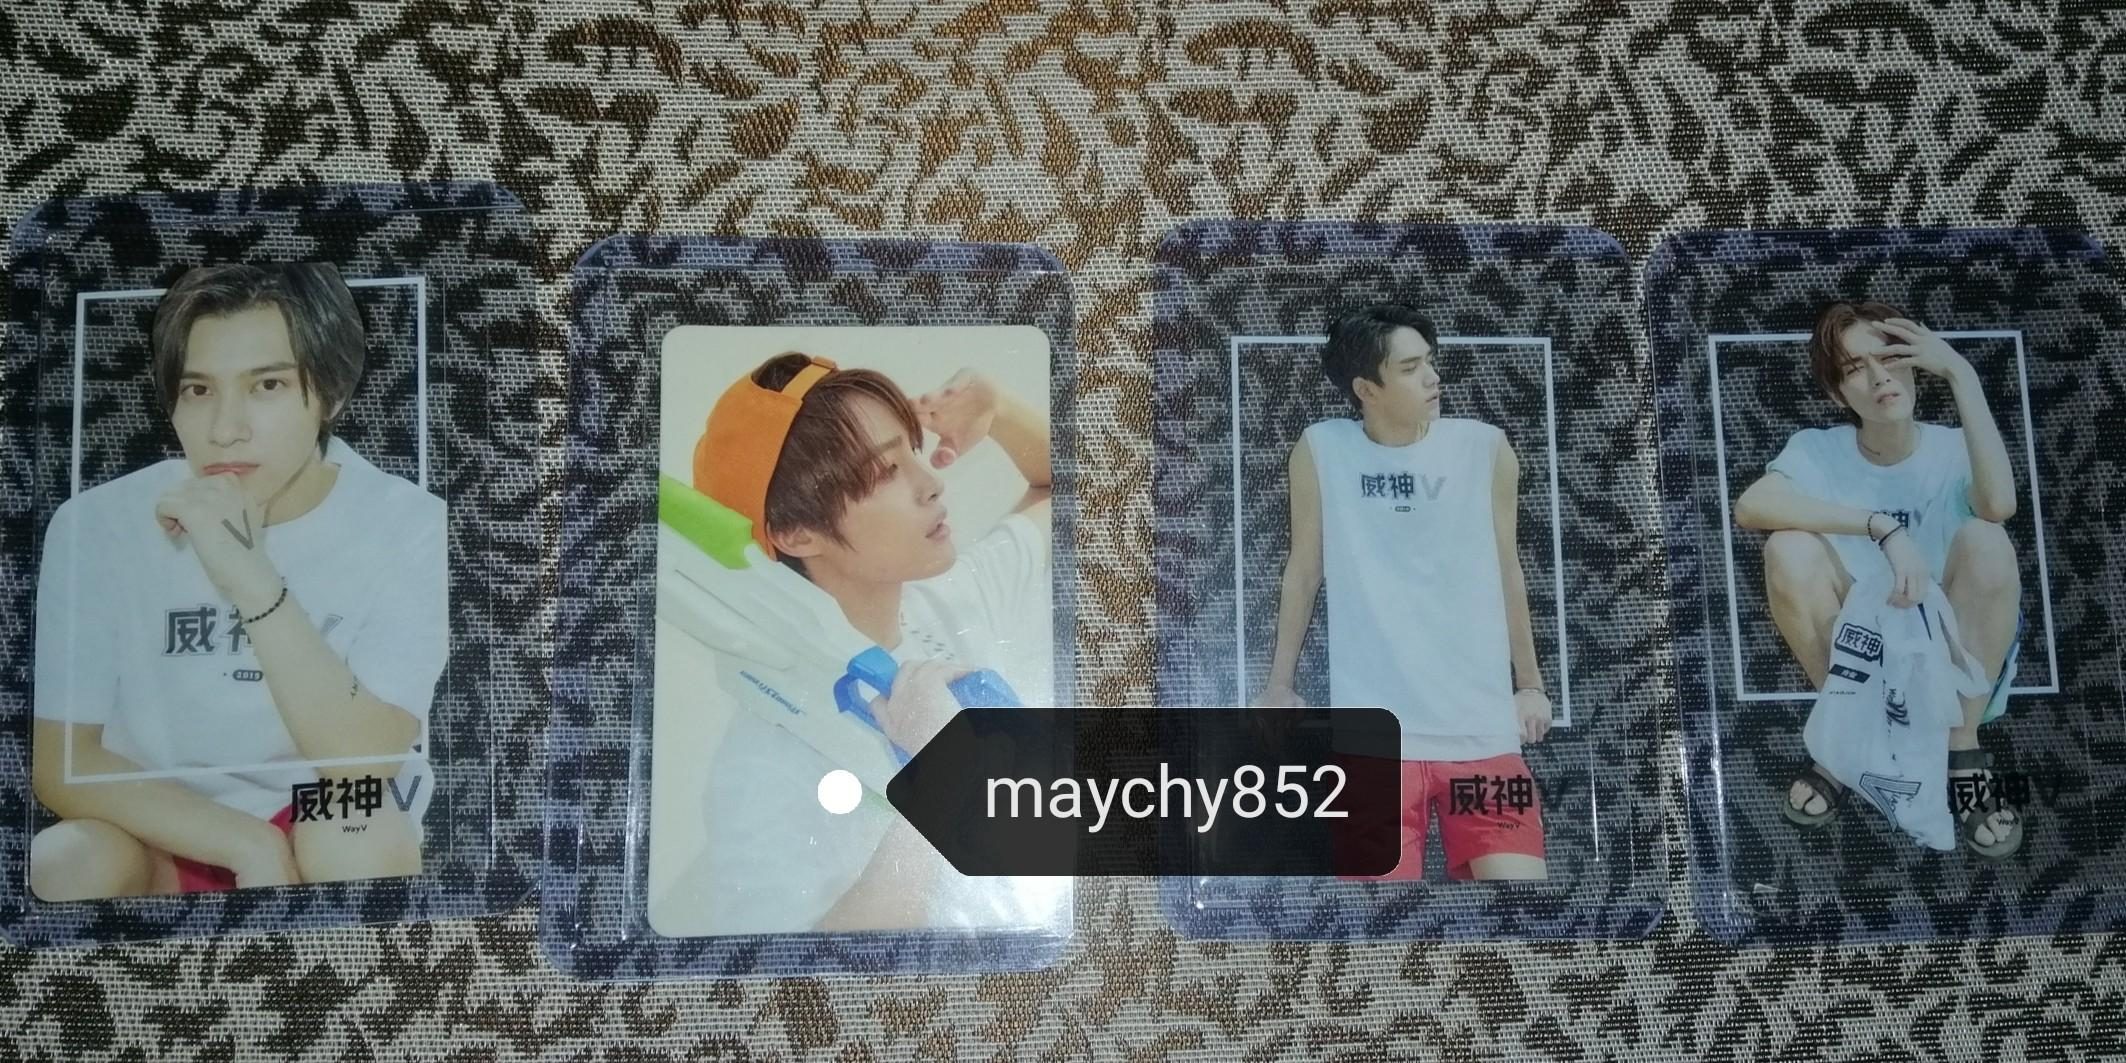 [CLOSED] WAYV SUMMER VACATION KIT 11 STREET /WITHDRAMA /WITHFANS PC